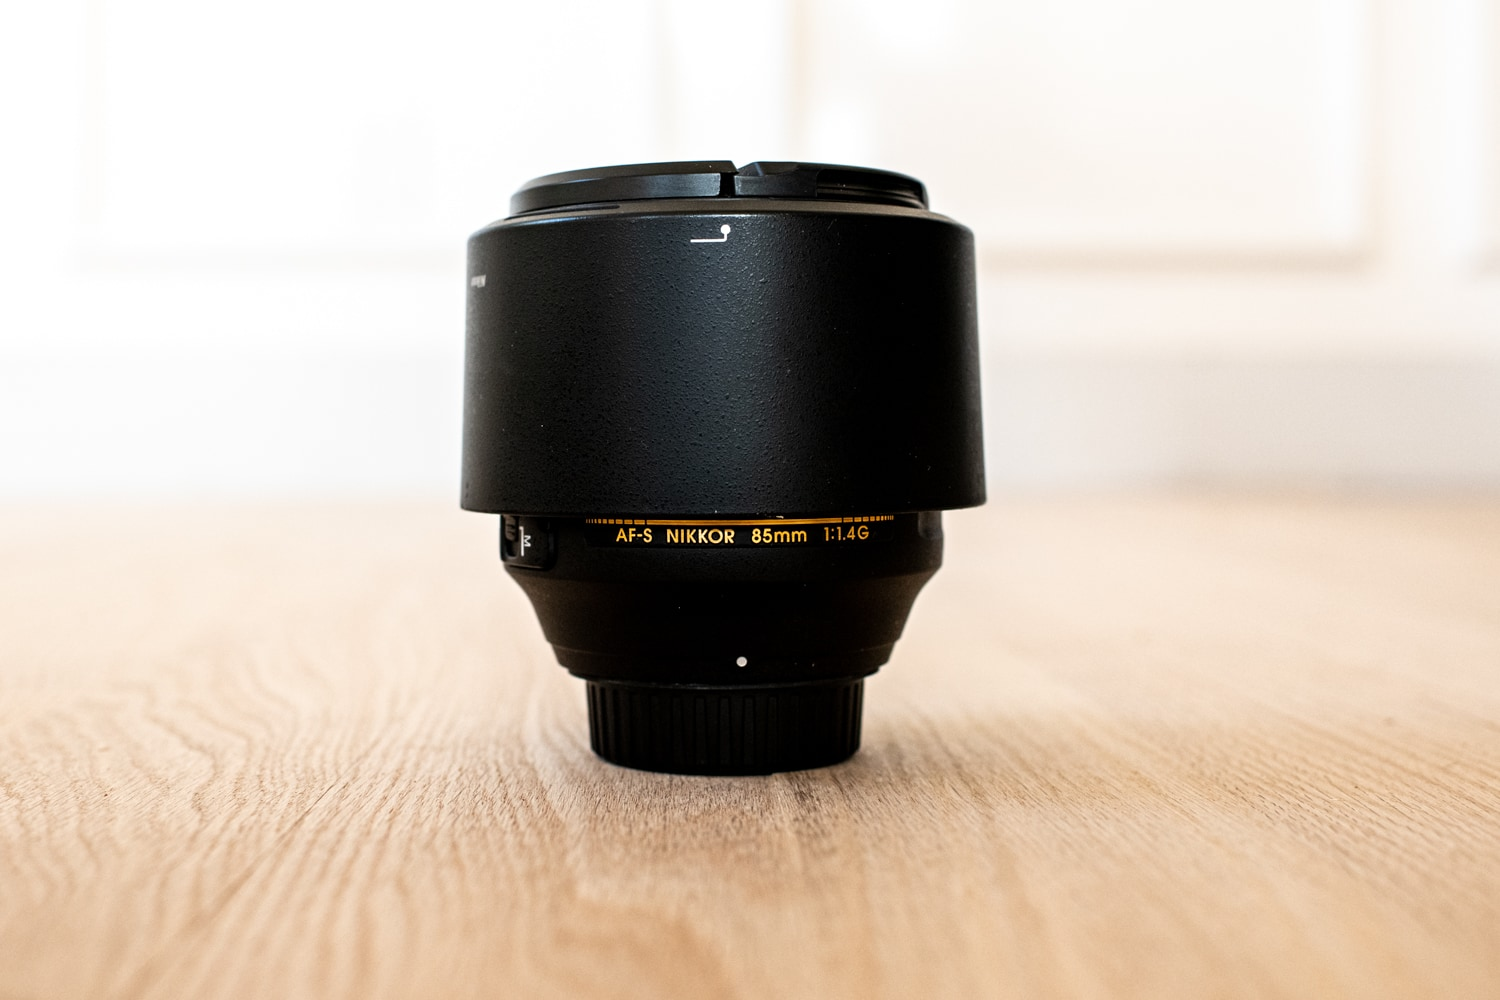 Nikkor 85mm lens for wedding photography.